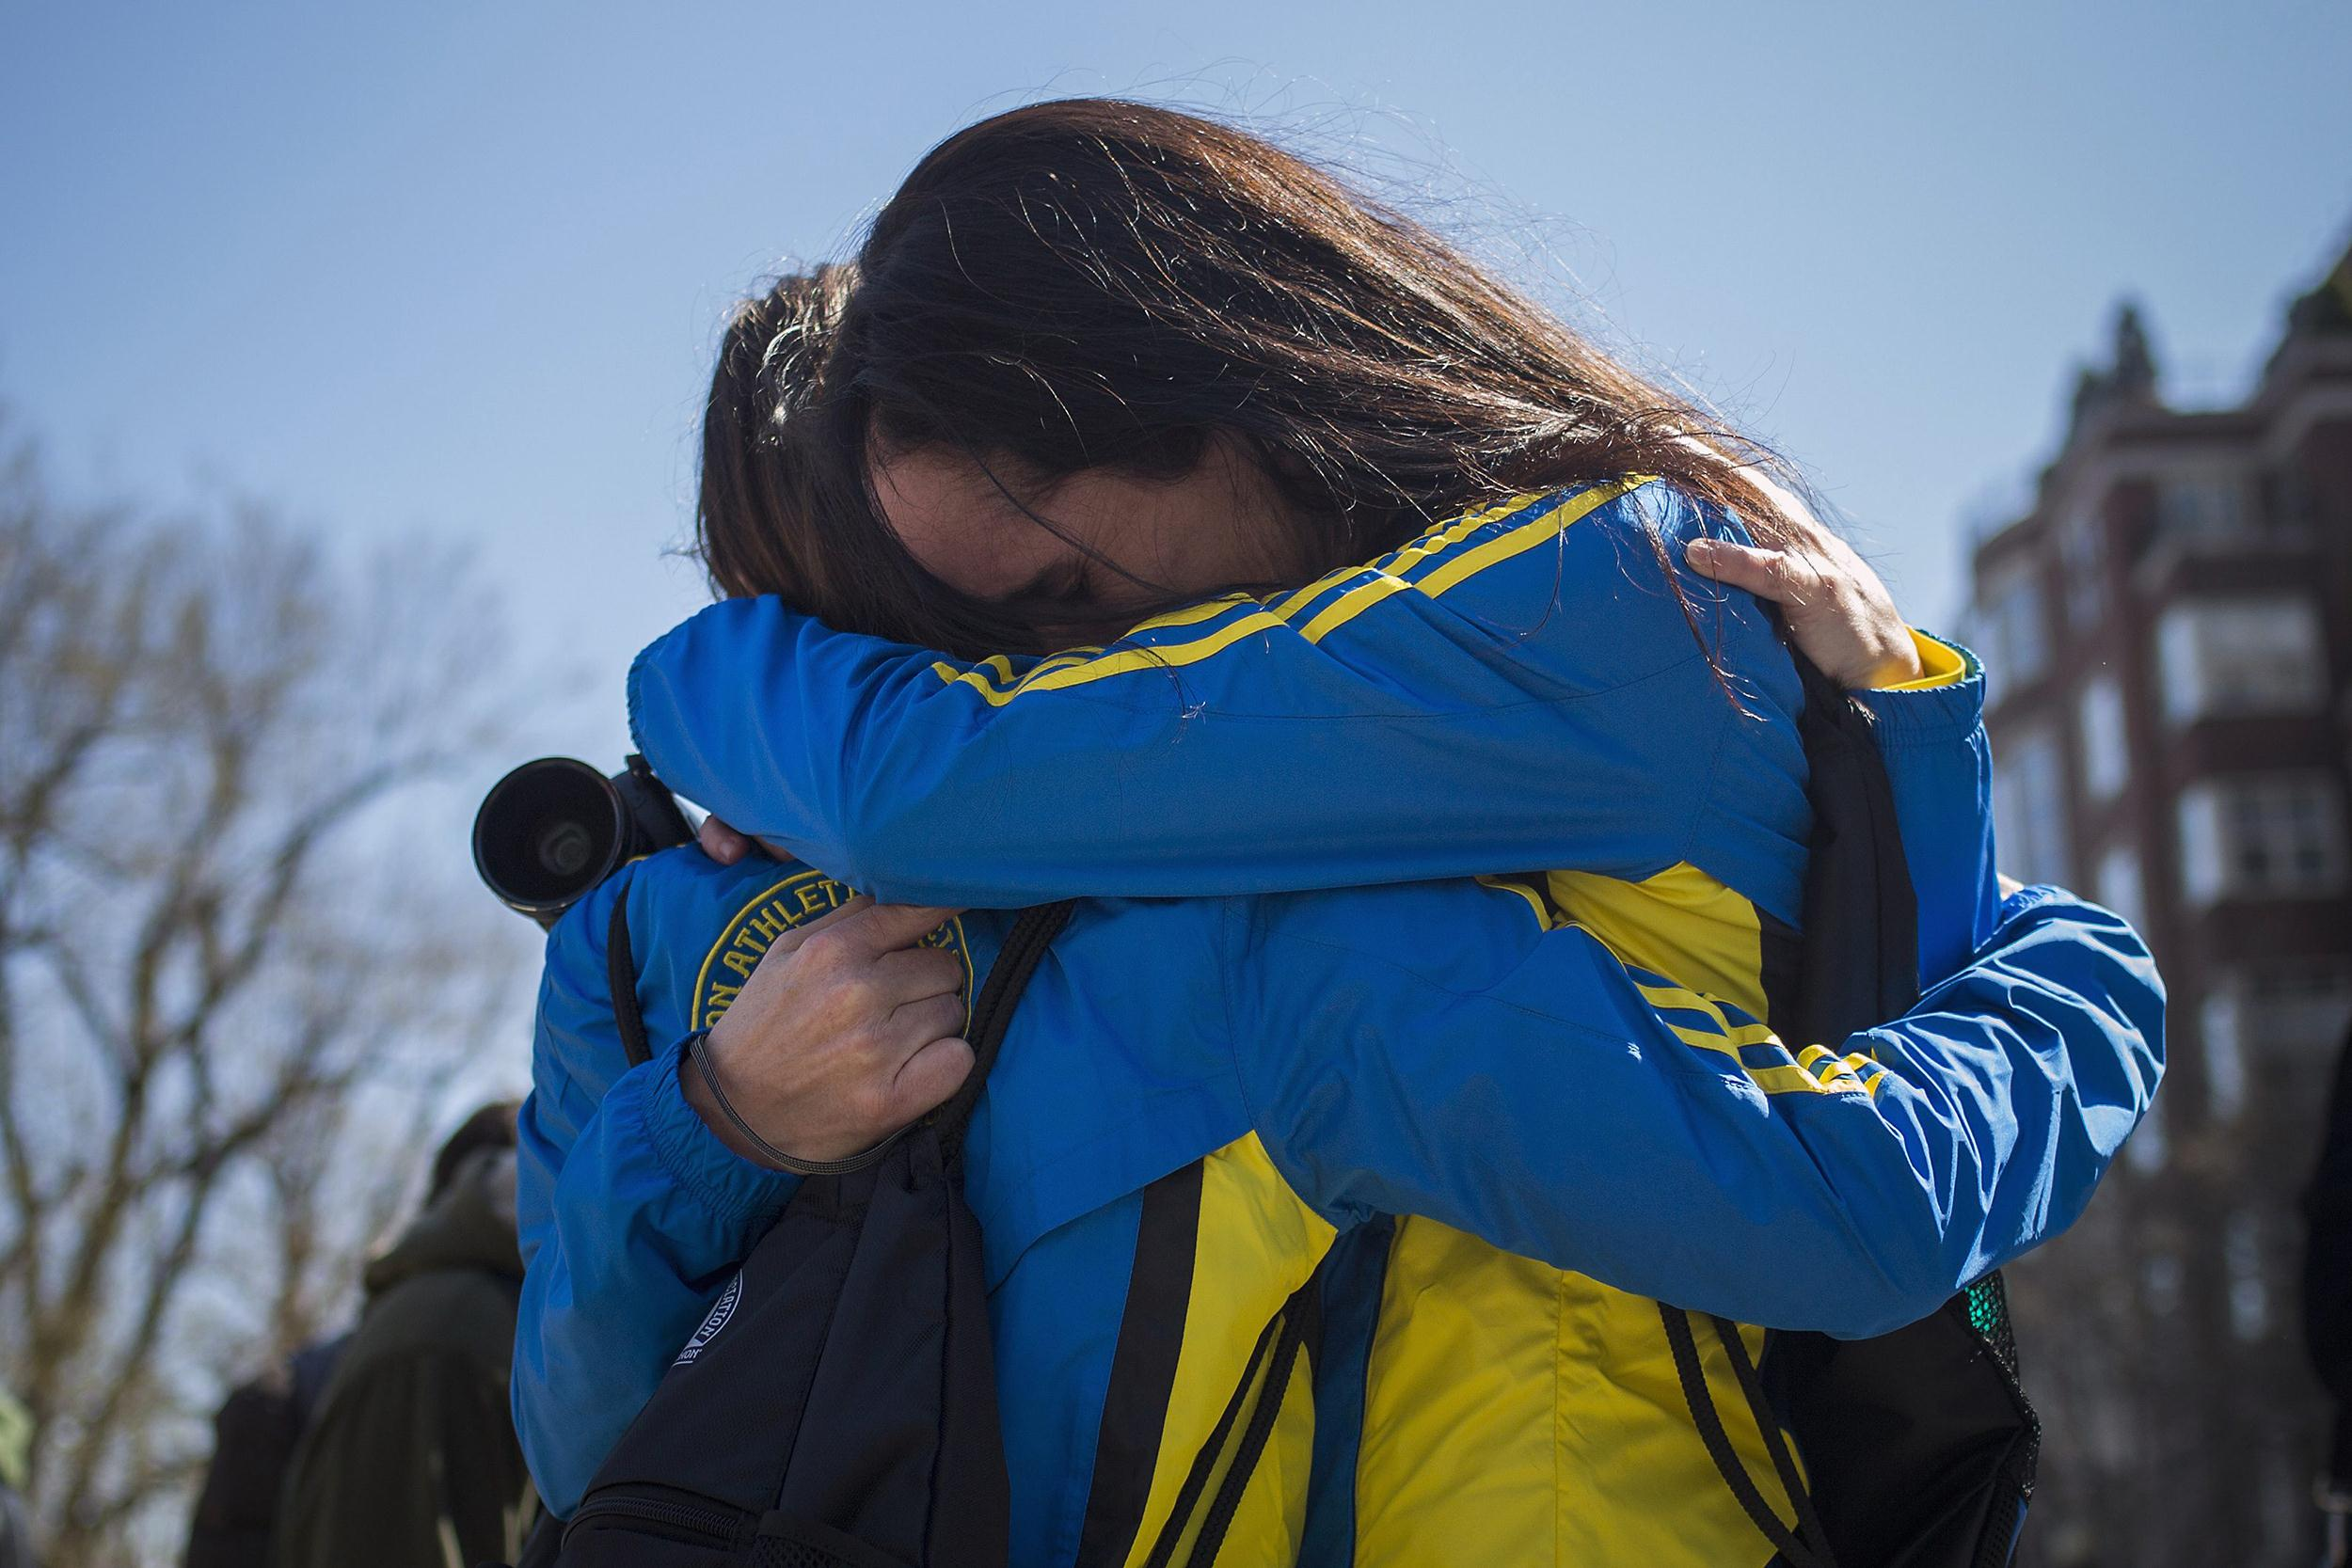 Image: Boston Marathon runners Kresky-Griffin and Snyder embrace at the barricaded entrance at Boylston Street near the finish line of the Boston Marathon in Boston, Massachusetts